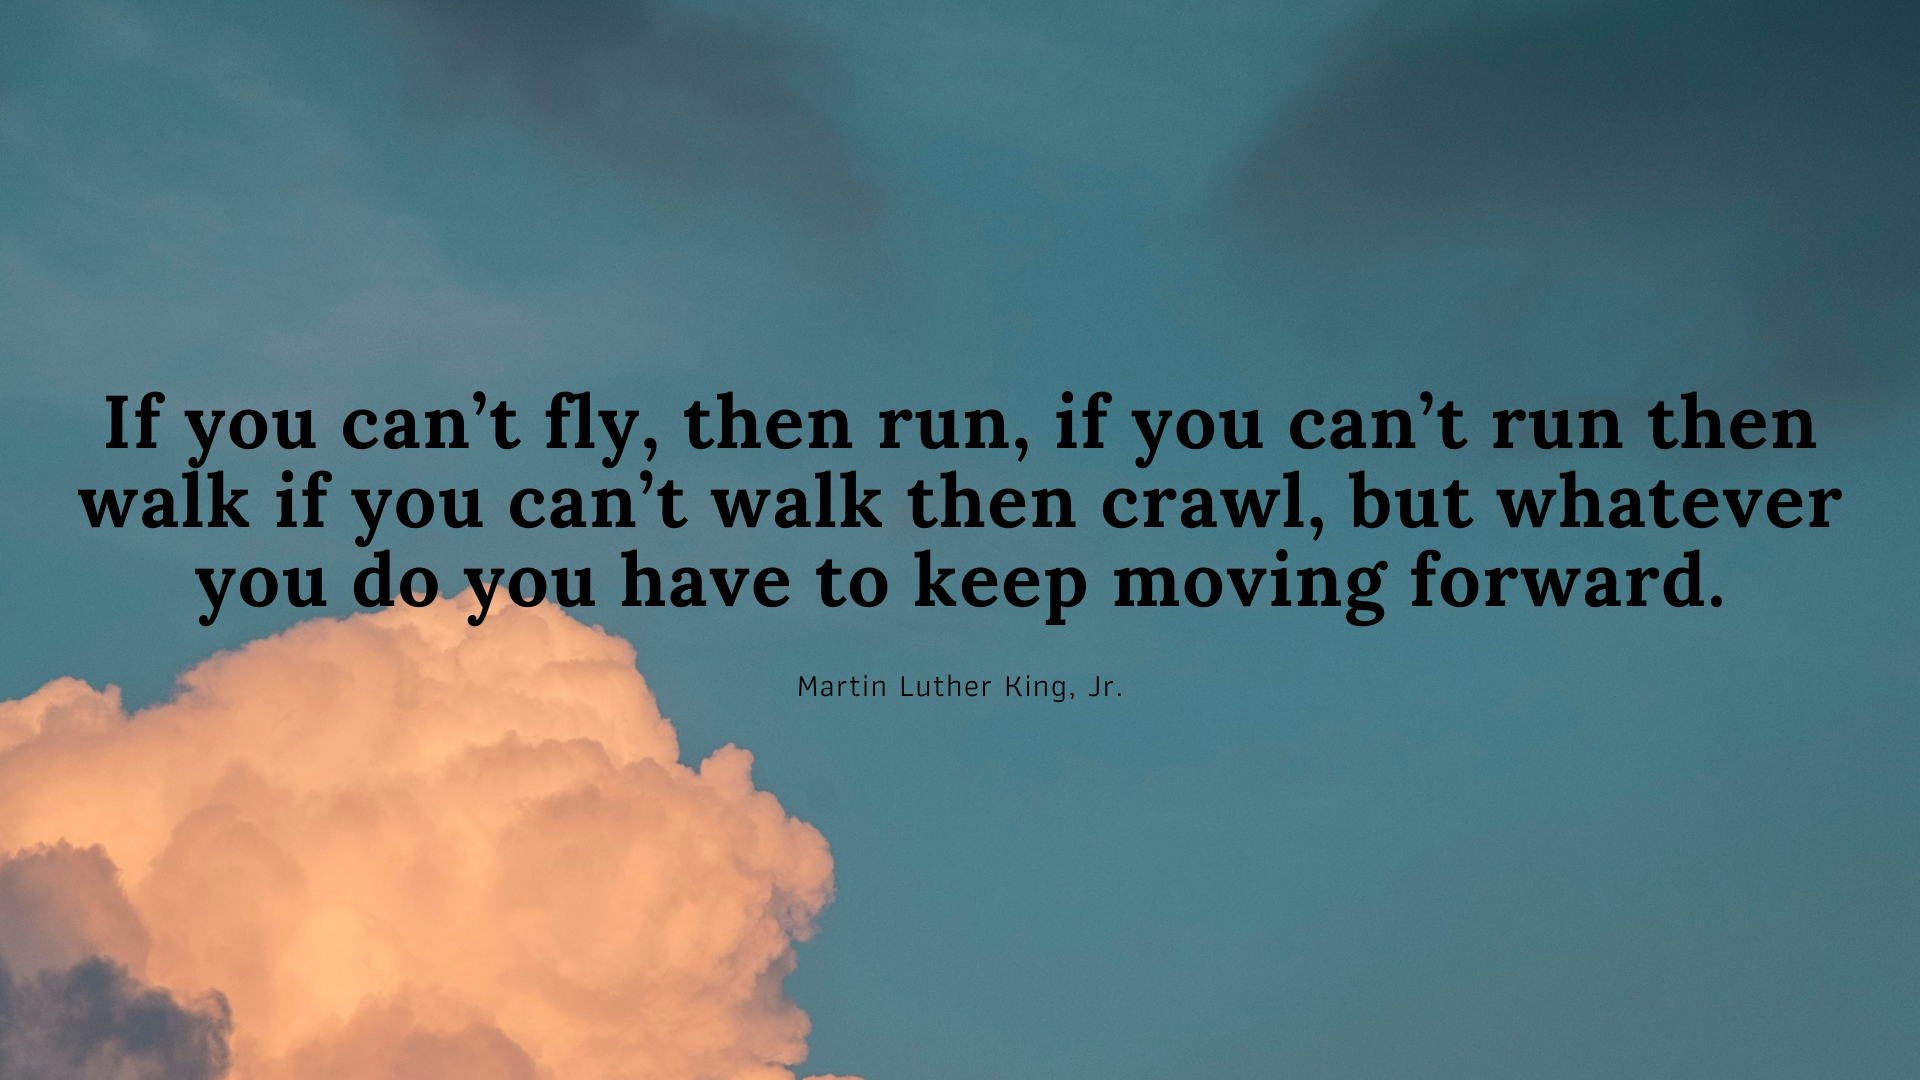 If you can't fly, then run, if you can't run then walk if you can't walk then crawl, but whatever you do you have to keep moving forward. – Martin Luther King, Jr.[1920×1080]